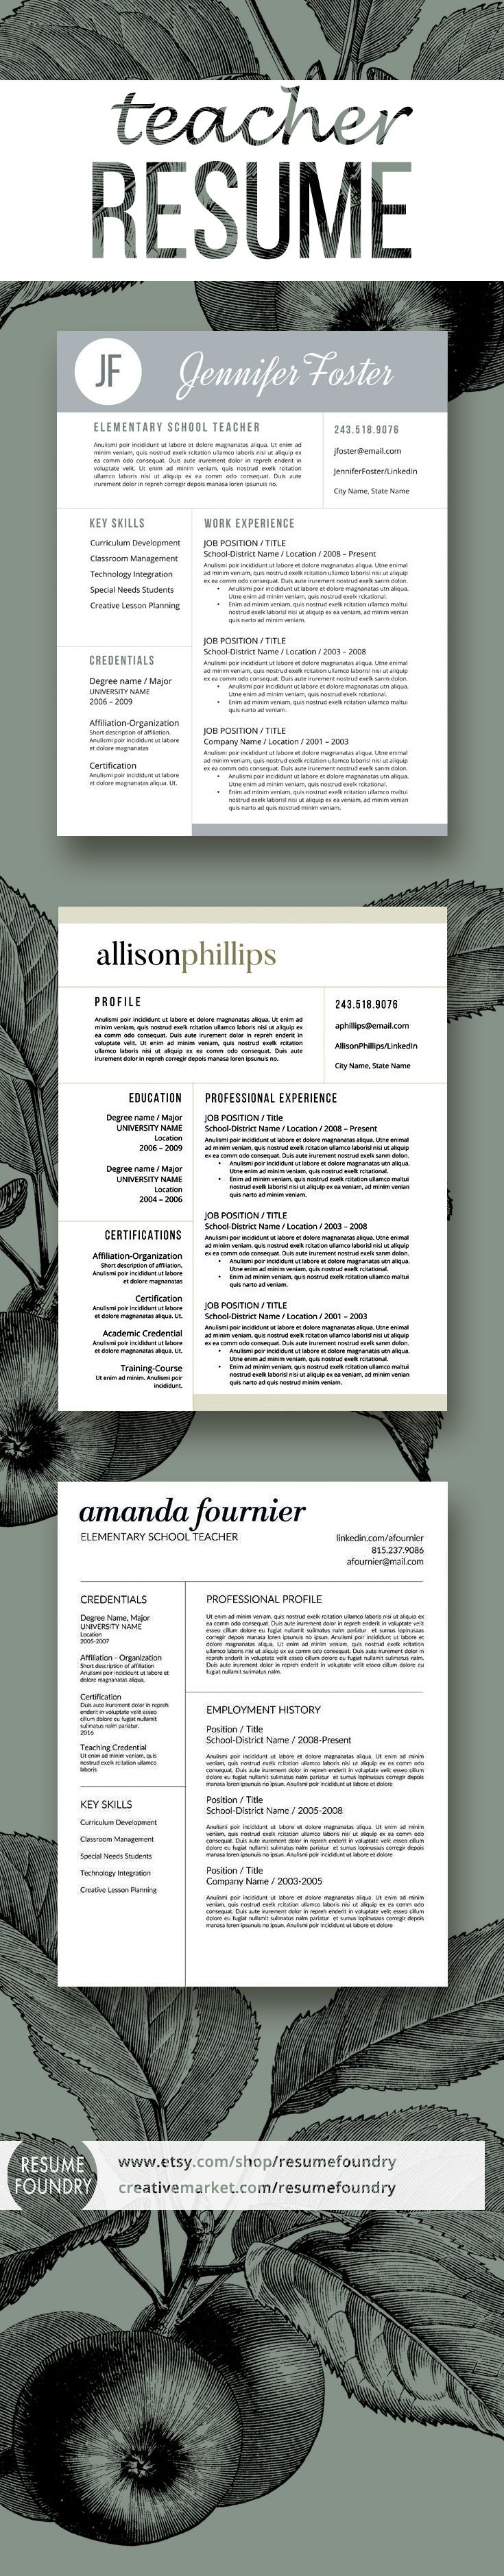 selection of great teacher resumes simple clean easy to use